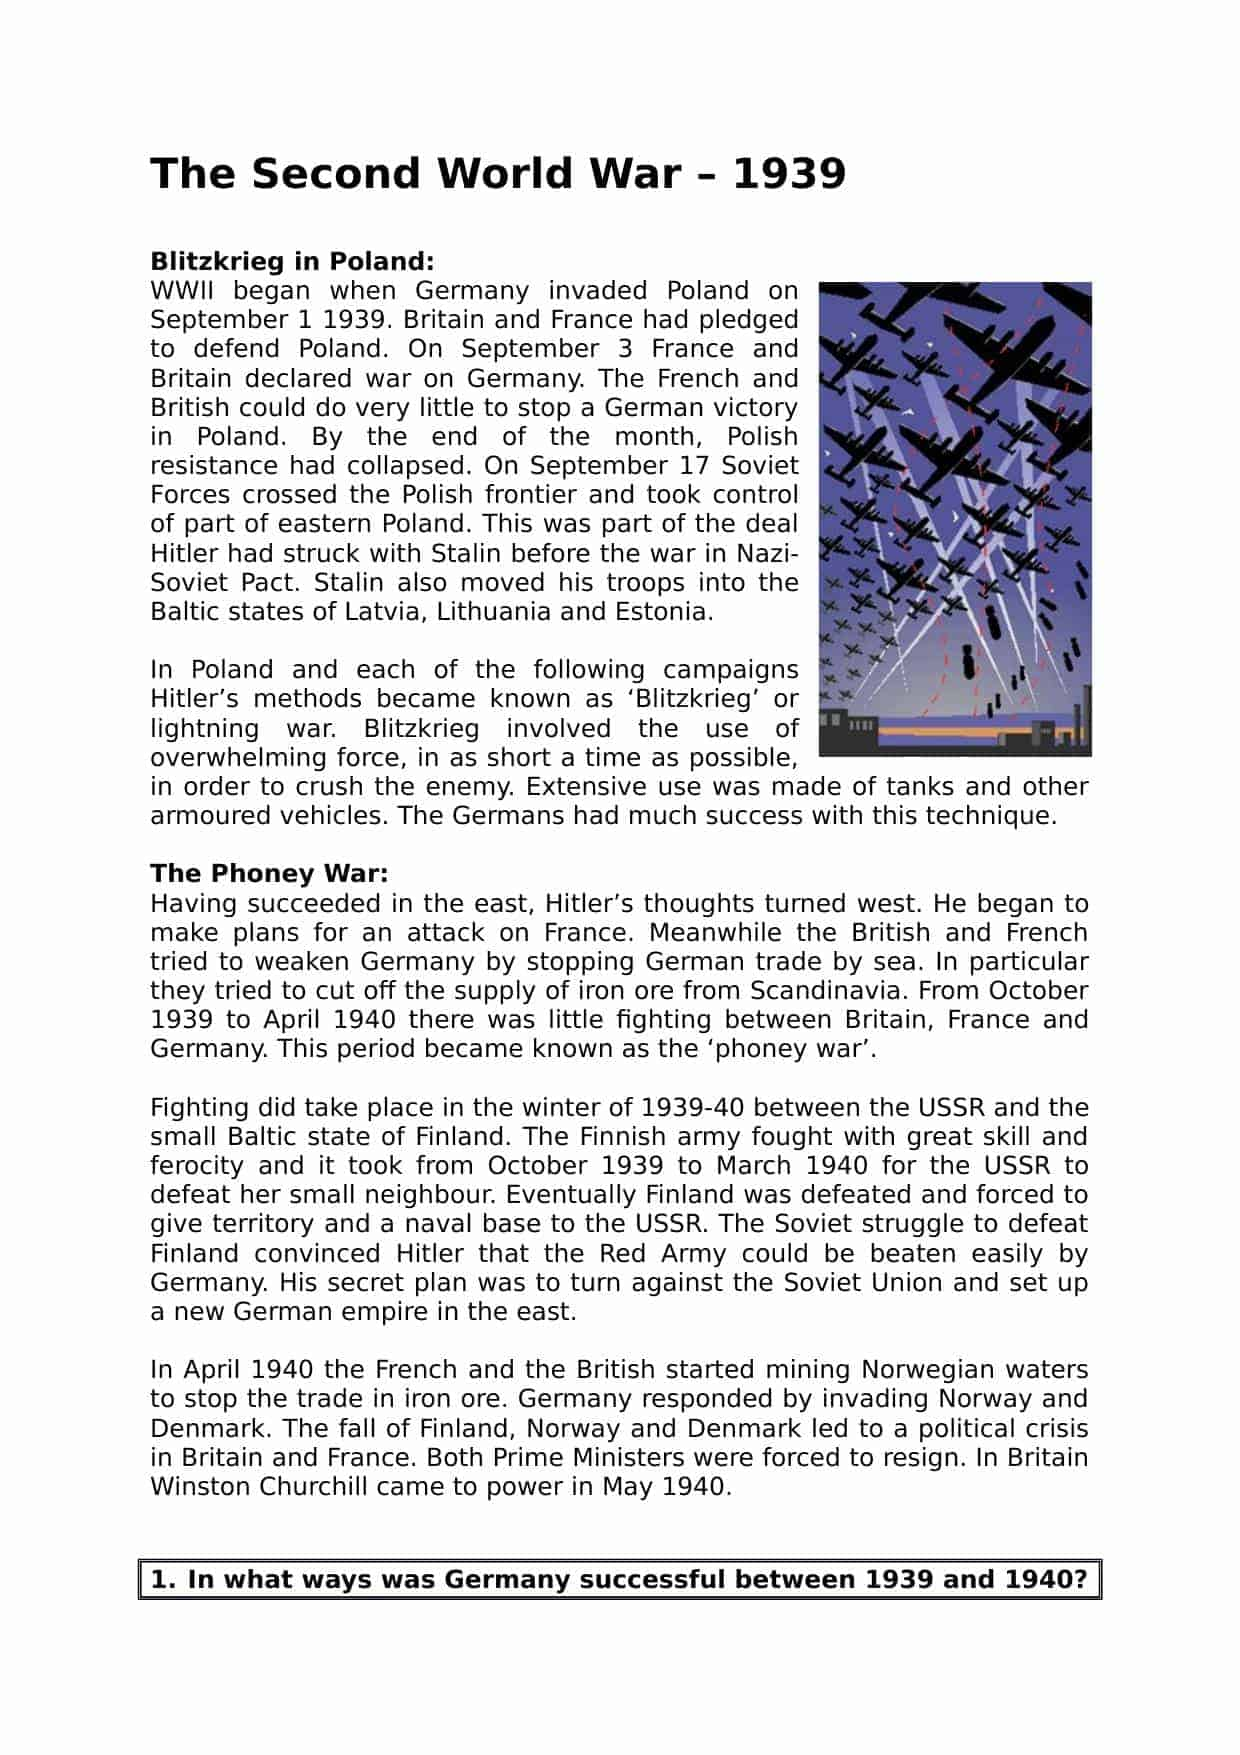 The Second Word War Facts Amp Summary Worksheet